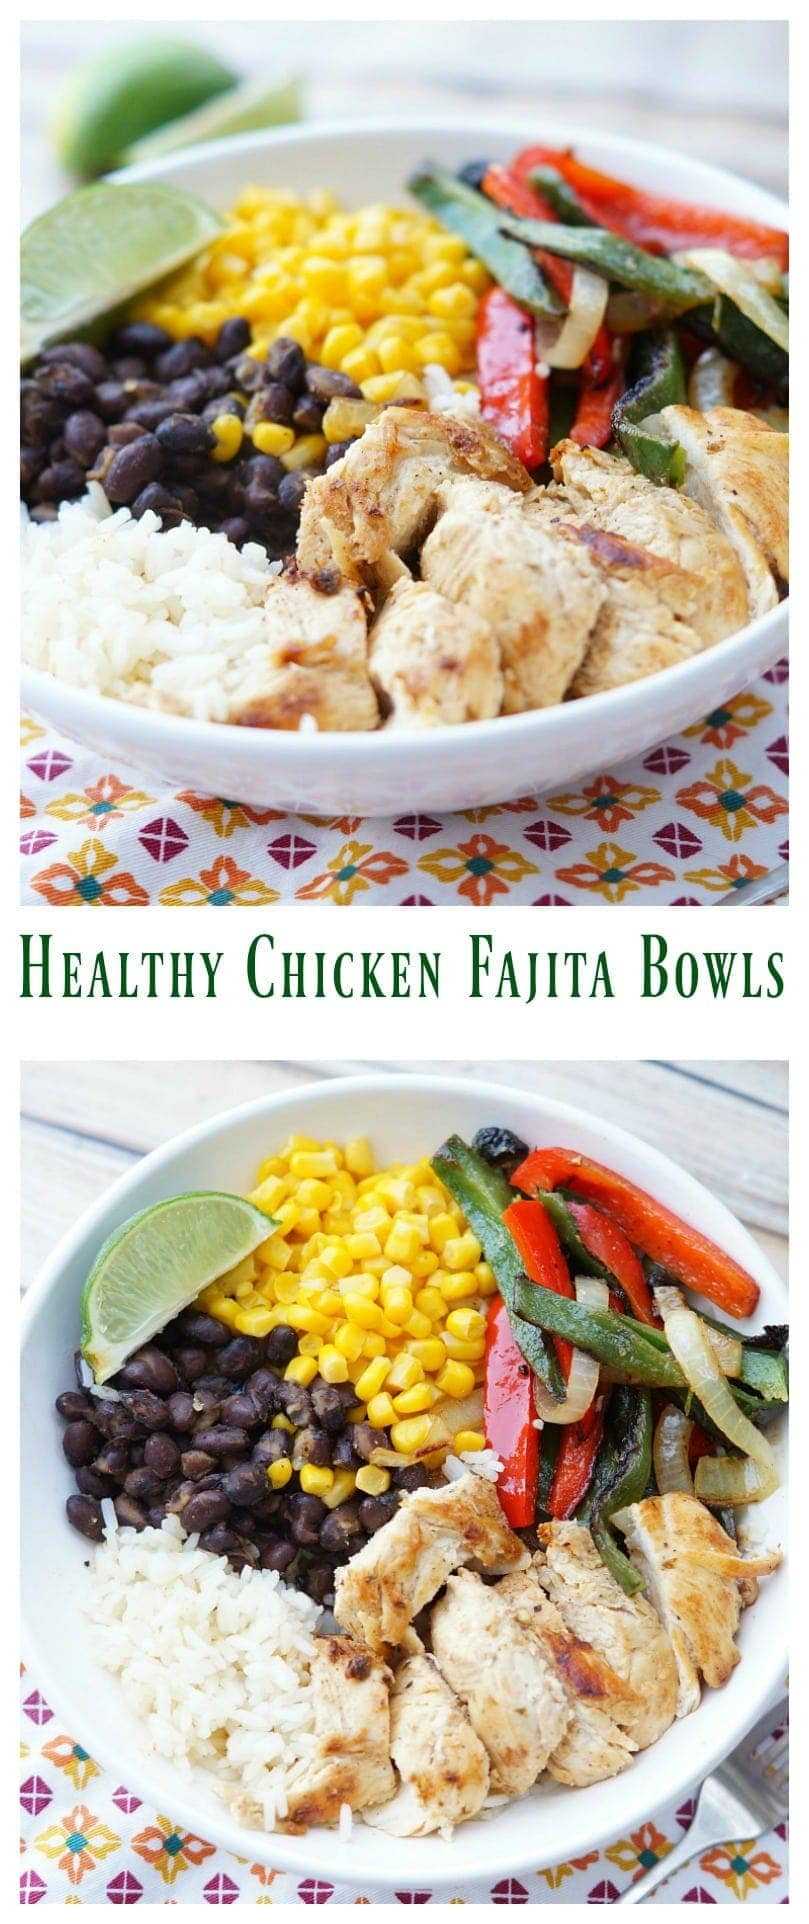 Healthy Chicken Fajita Bowls with photos in a collage.